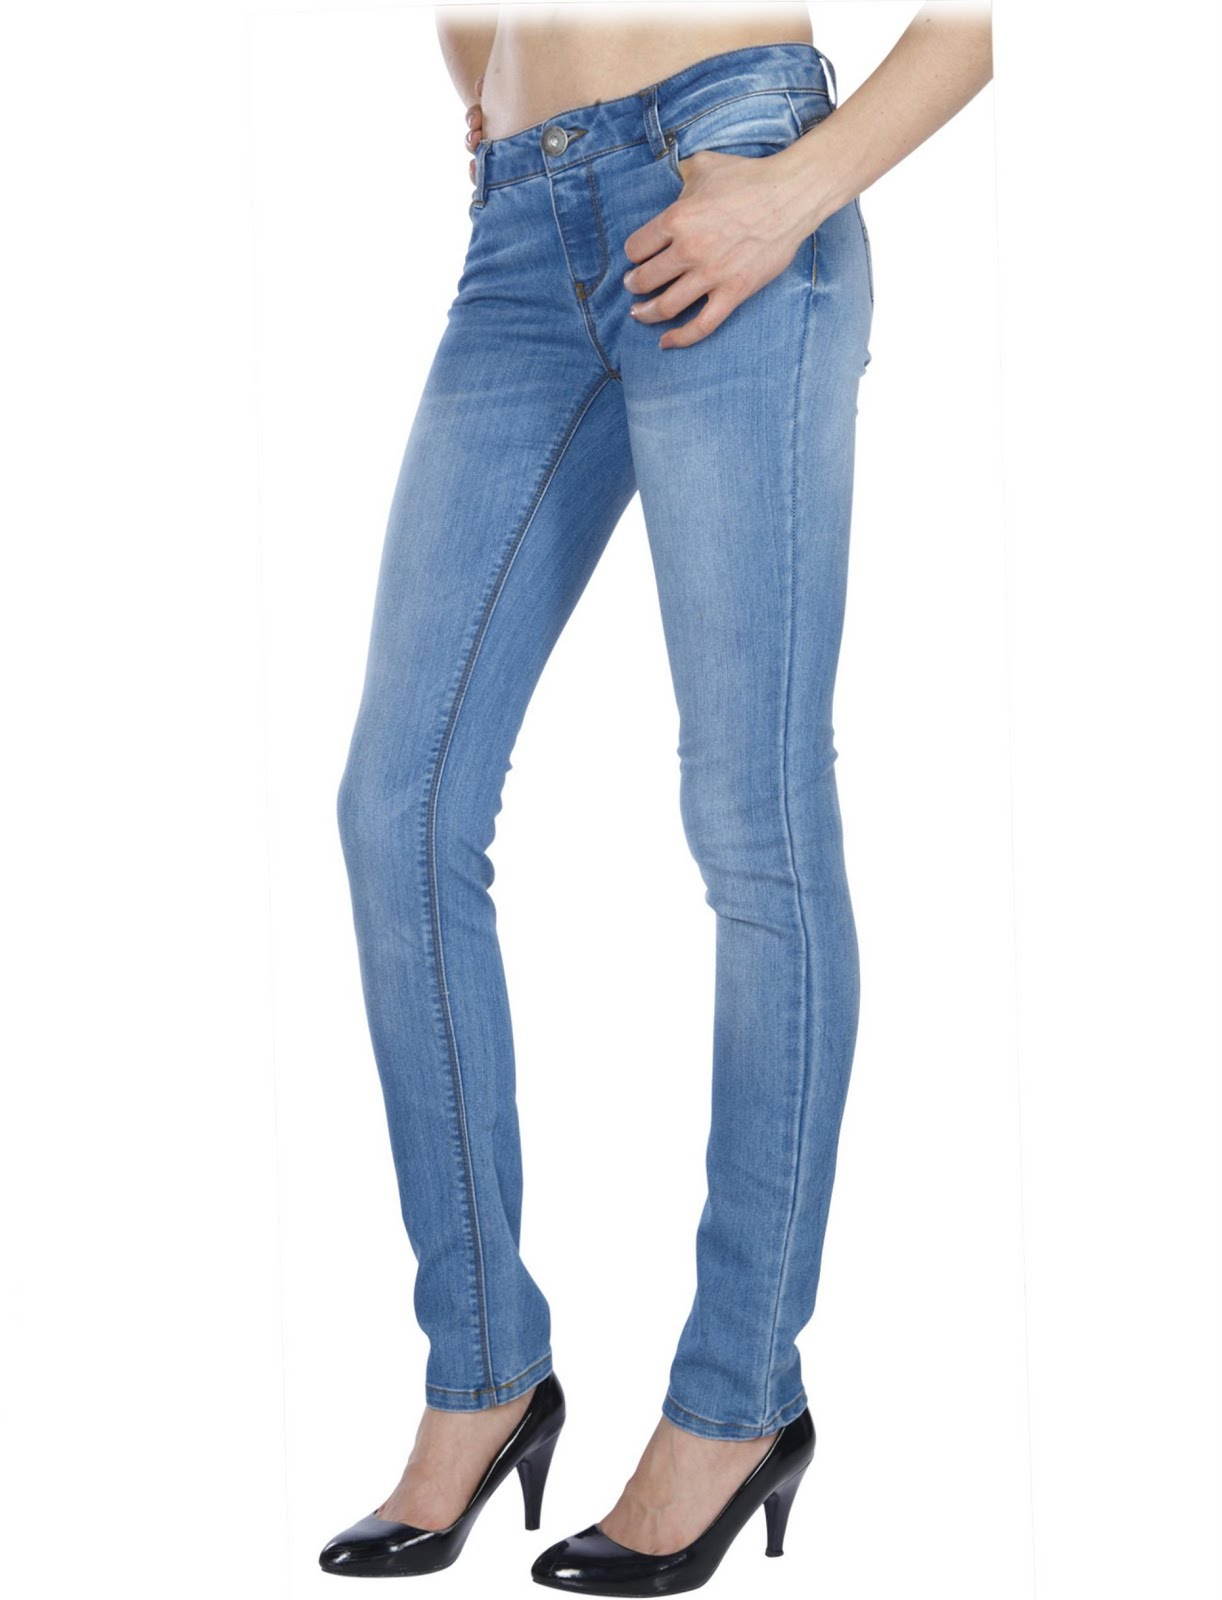 Find great deals on eBay for new york and company jeggings. Shop with confidence.